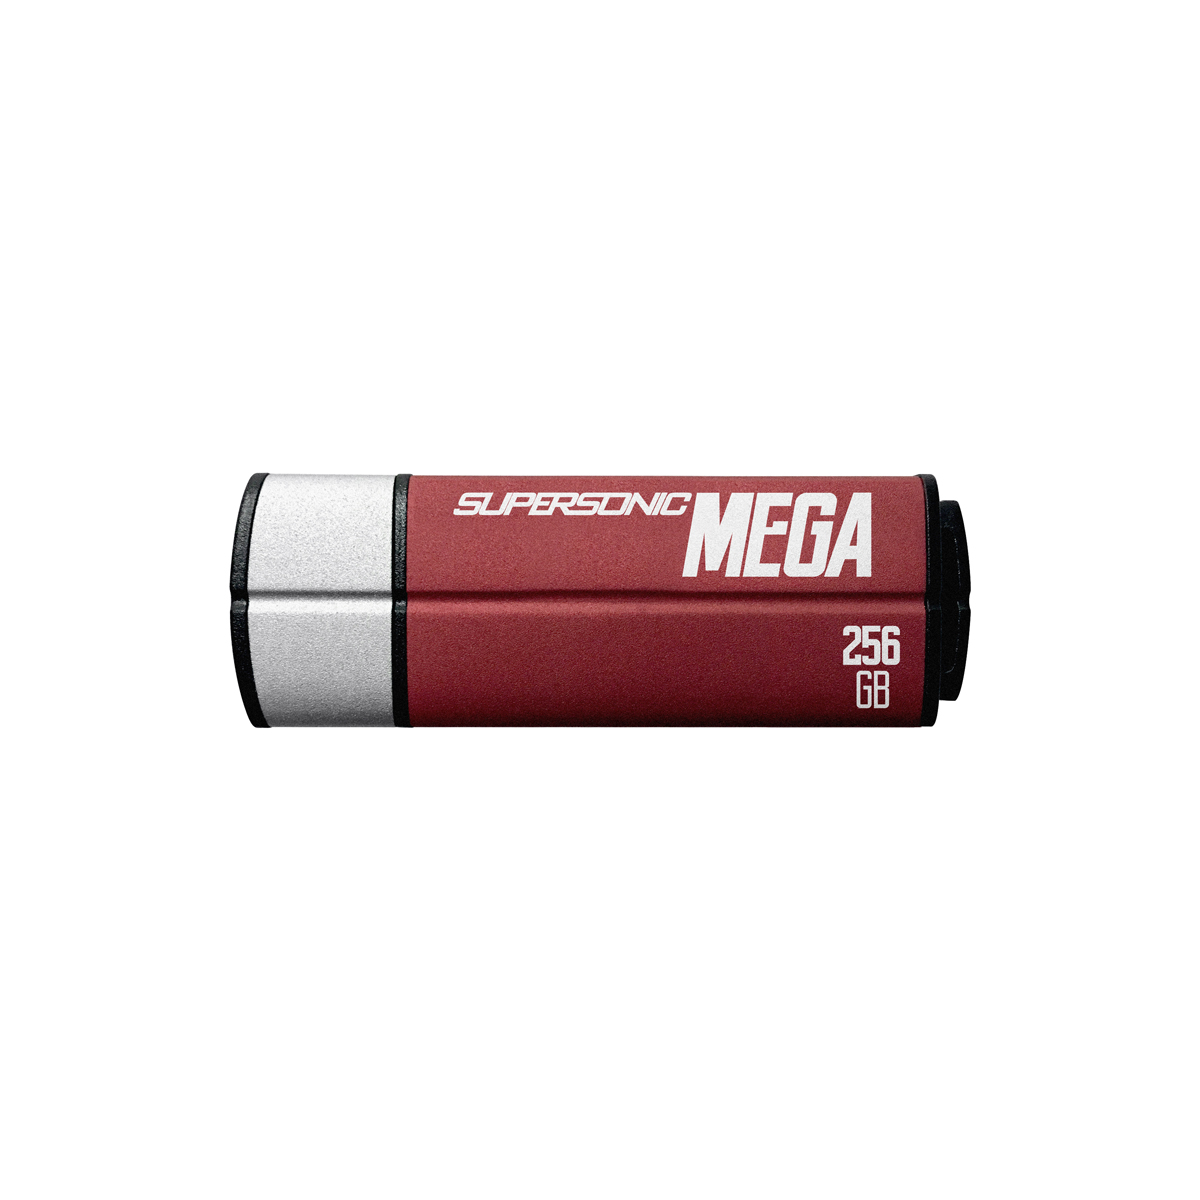 256GB Patriot Mega USB 3.1 380/70MBs